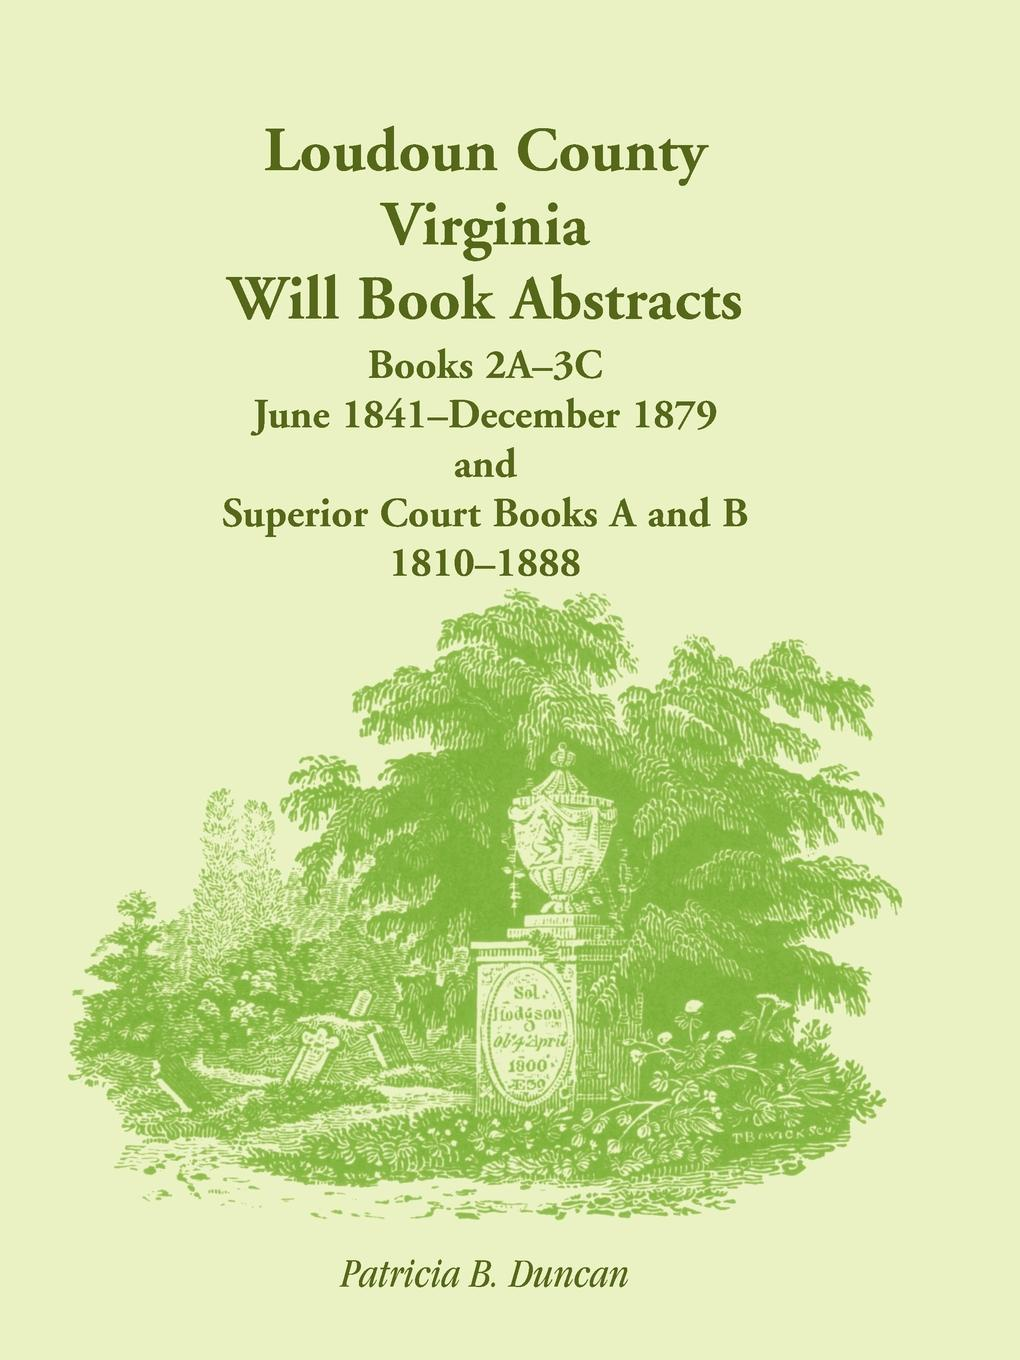 Patricia B. Duncan Loudoun County, Virginia Will Book Abstracts, Books 2A-3C, Jun 1841 - Dec 1879 and Superior Court Books A and B, 1810-1888 patricia b duncan genealogical abstracts from the brunswick herald brunswick maryland 2 january 1903 to 29 june 1906